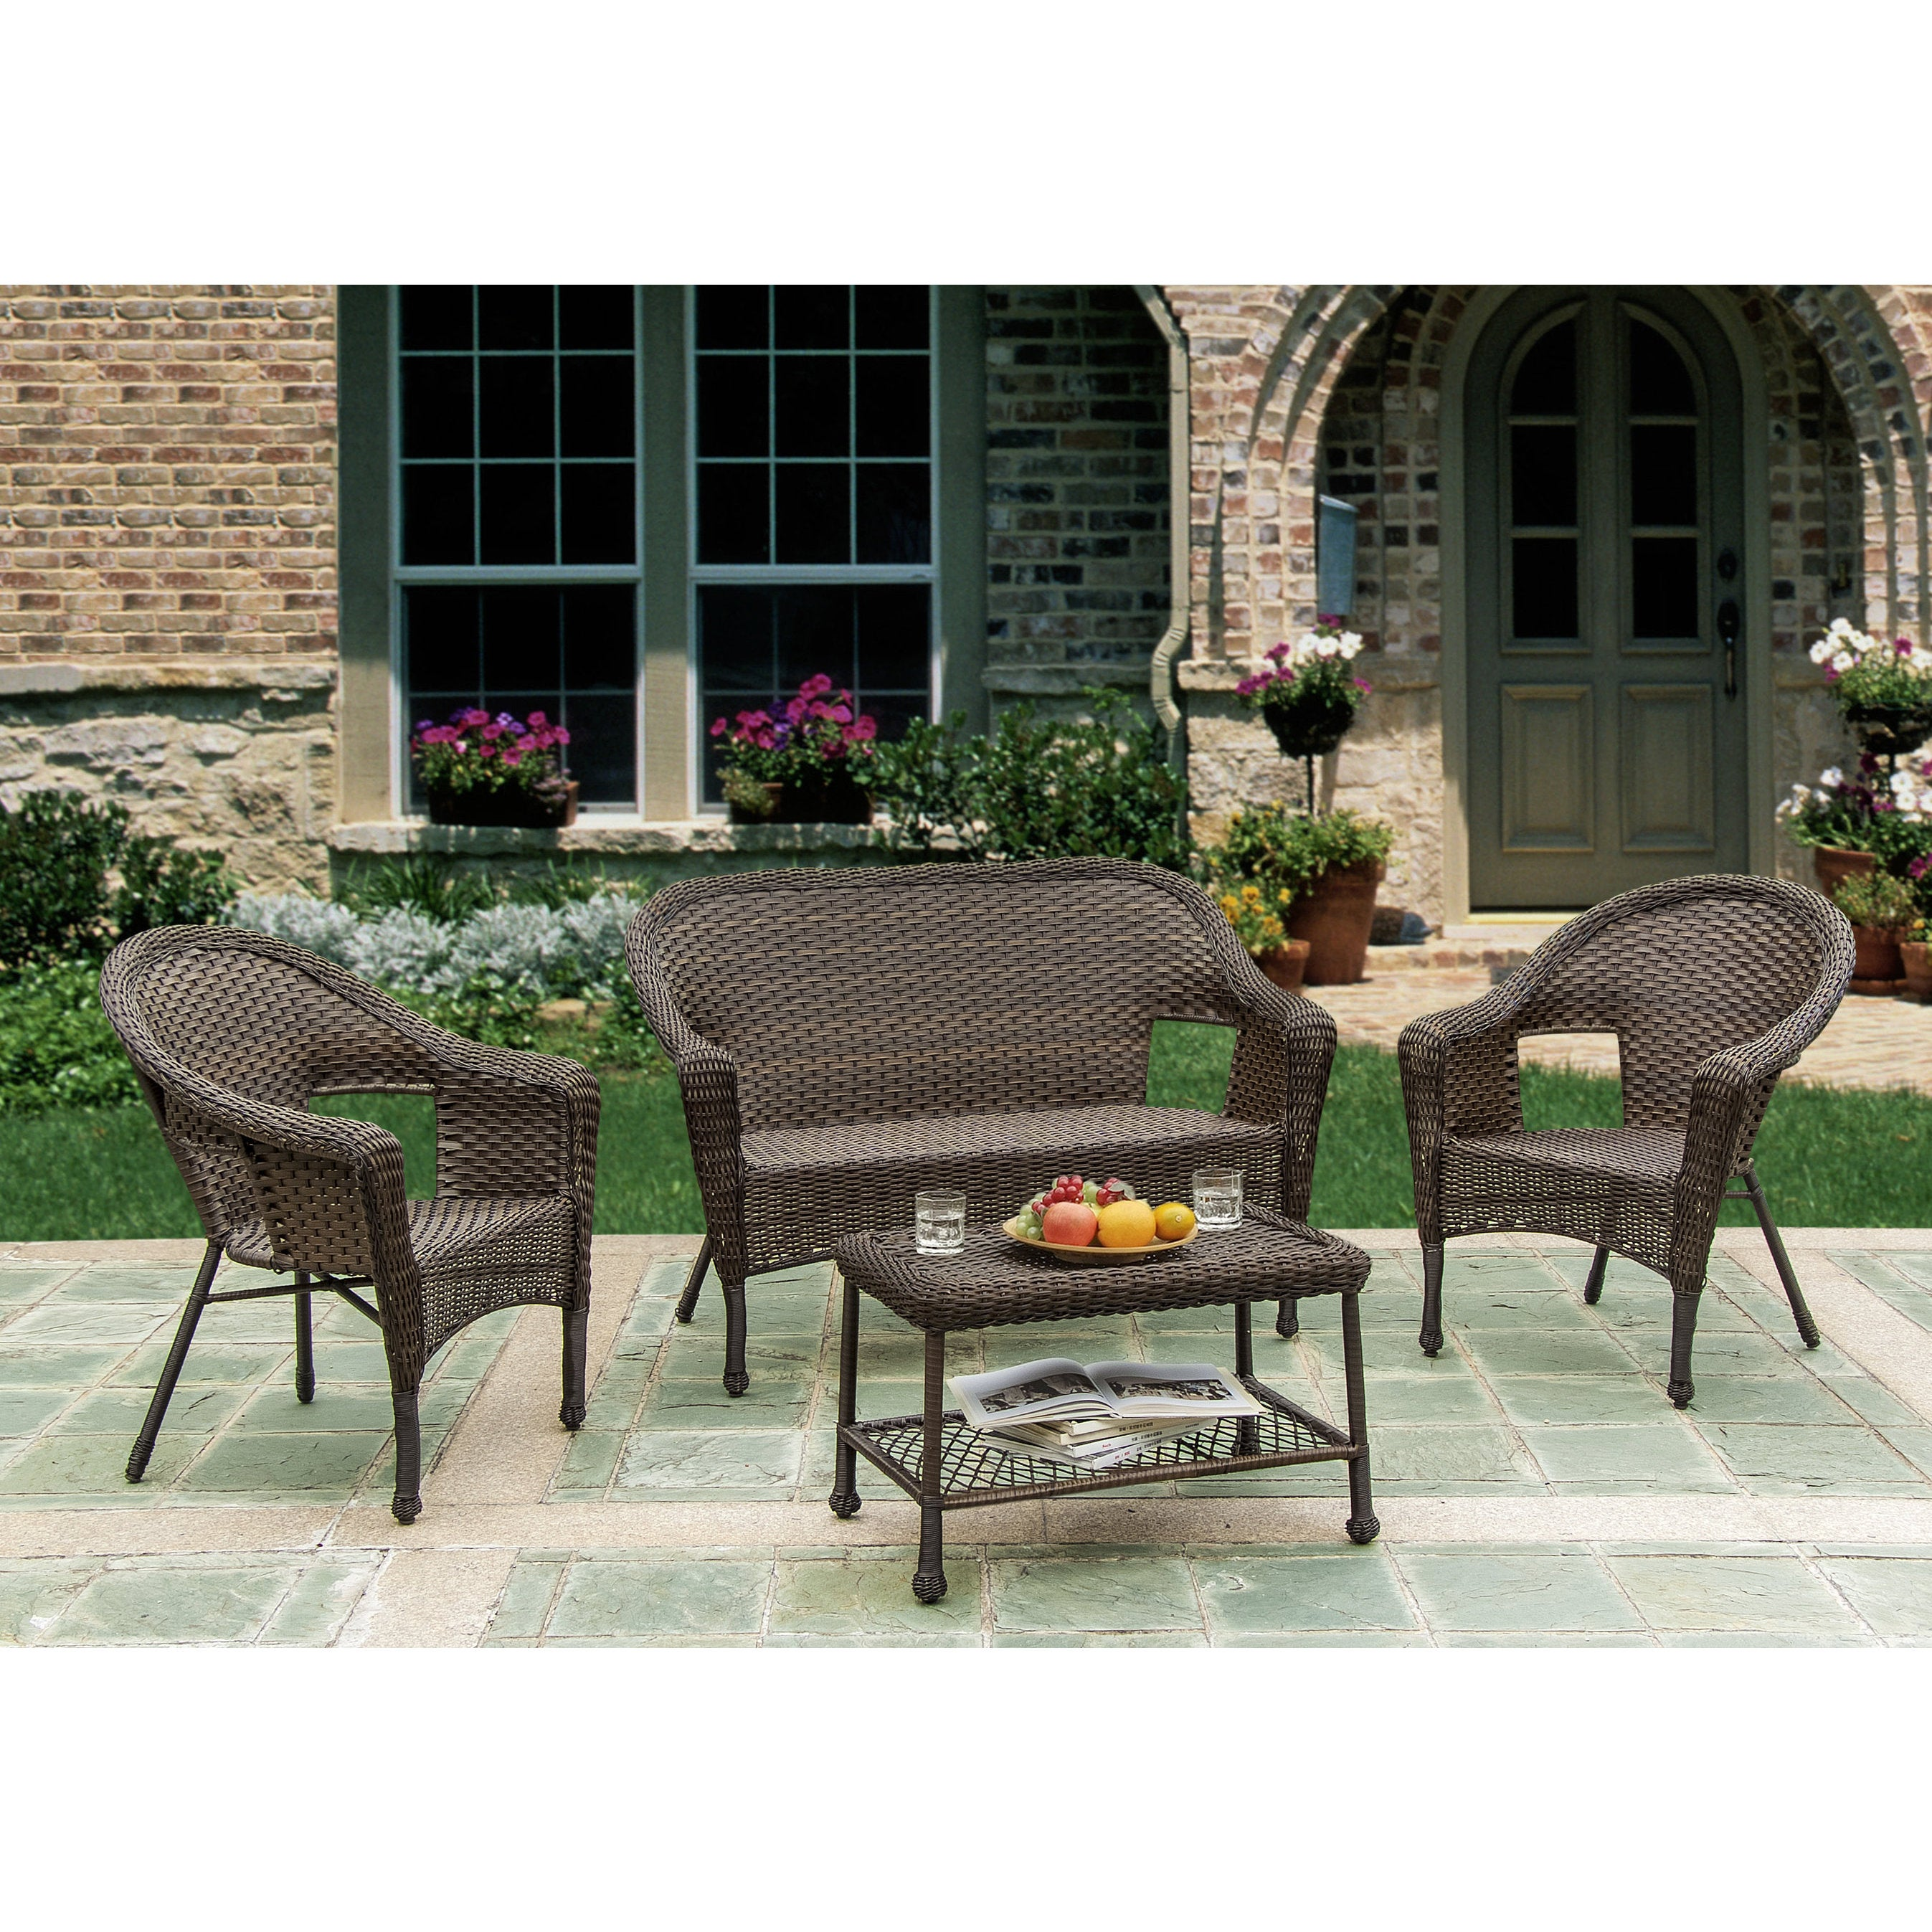 W Unlimited Brown Wicker 4 Piece Outdoor Furniture Set Free Shipping Today 9422178